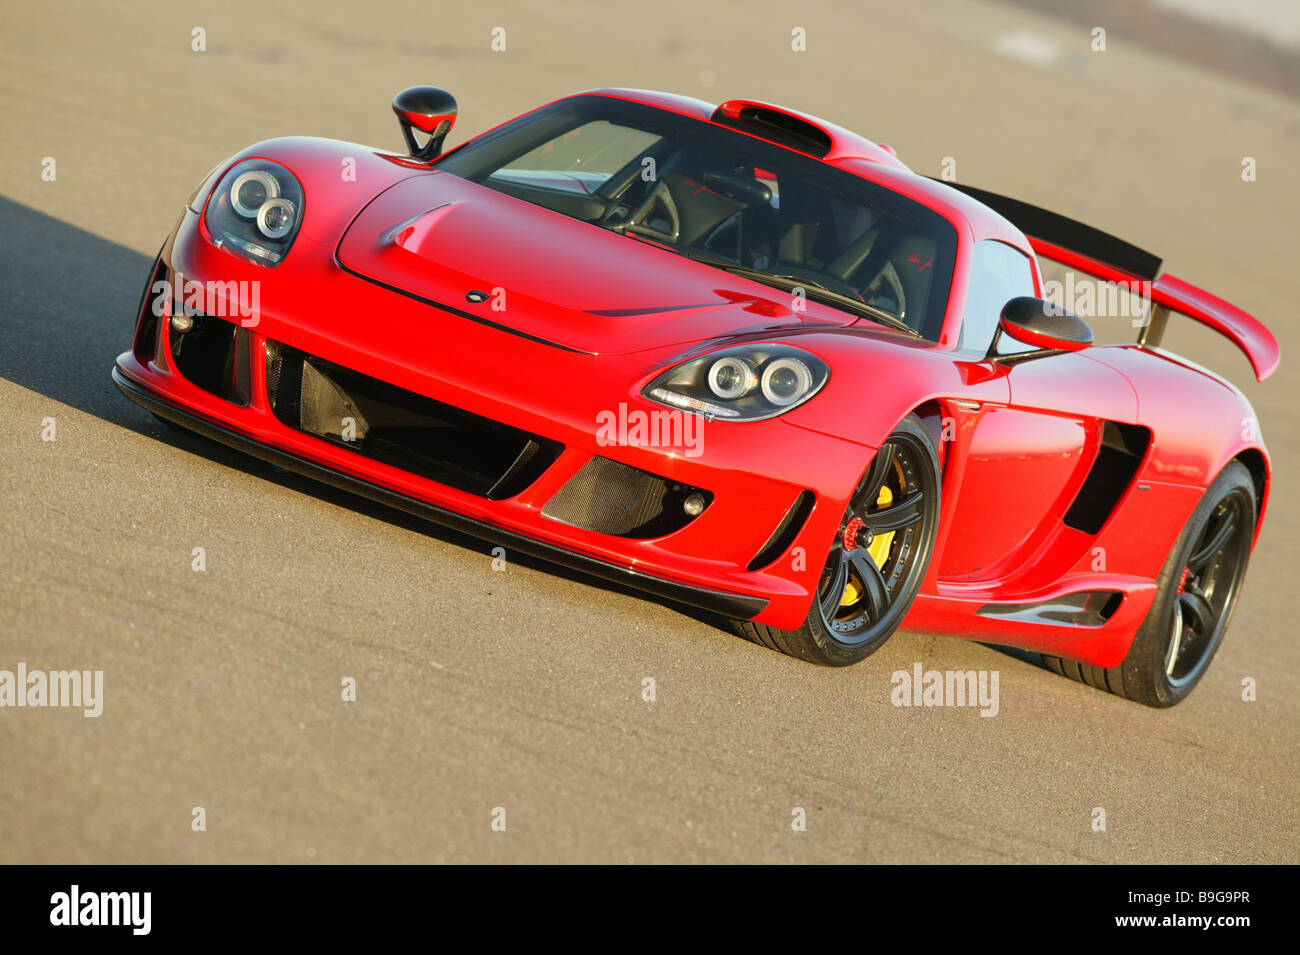 Porsche Gemballa Mirage Red Front View Series Vehicle Car Sport Cars